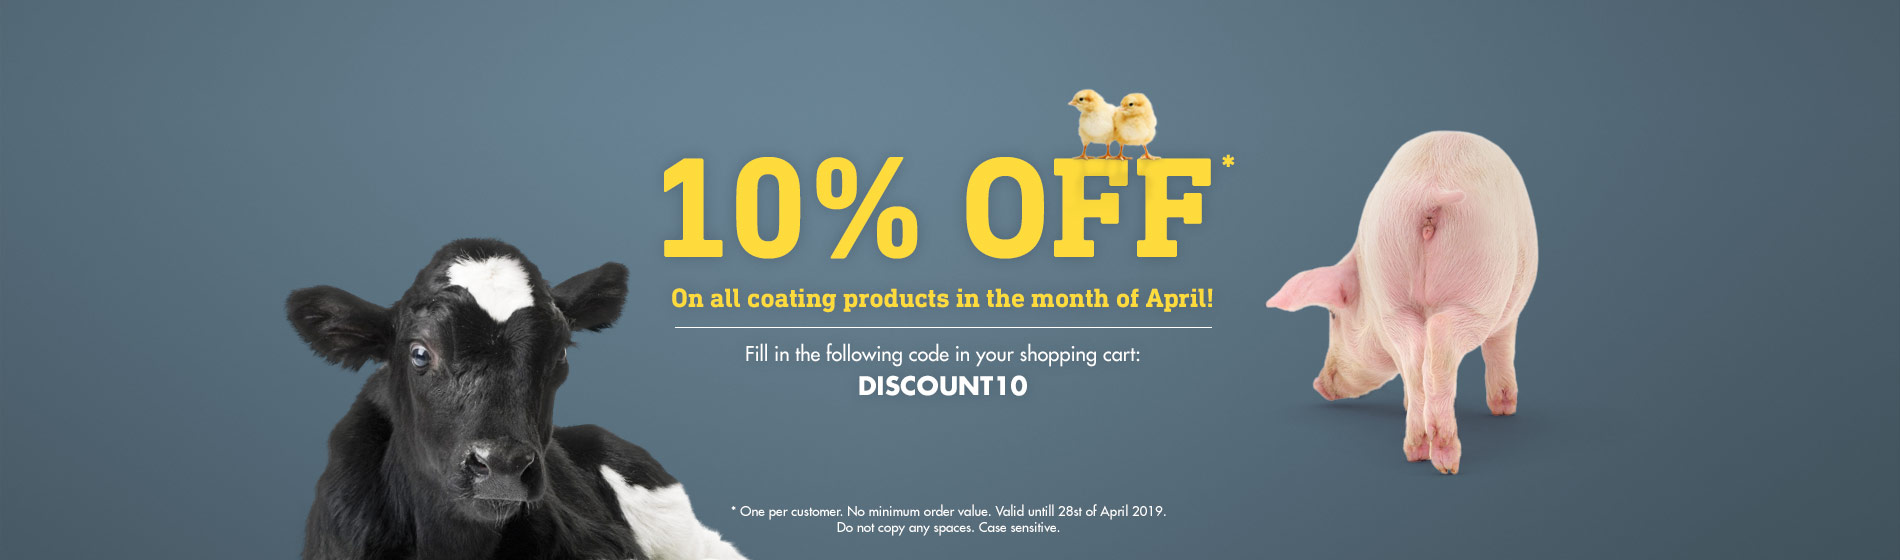 10% discount on all coating products*